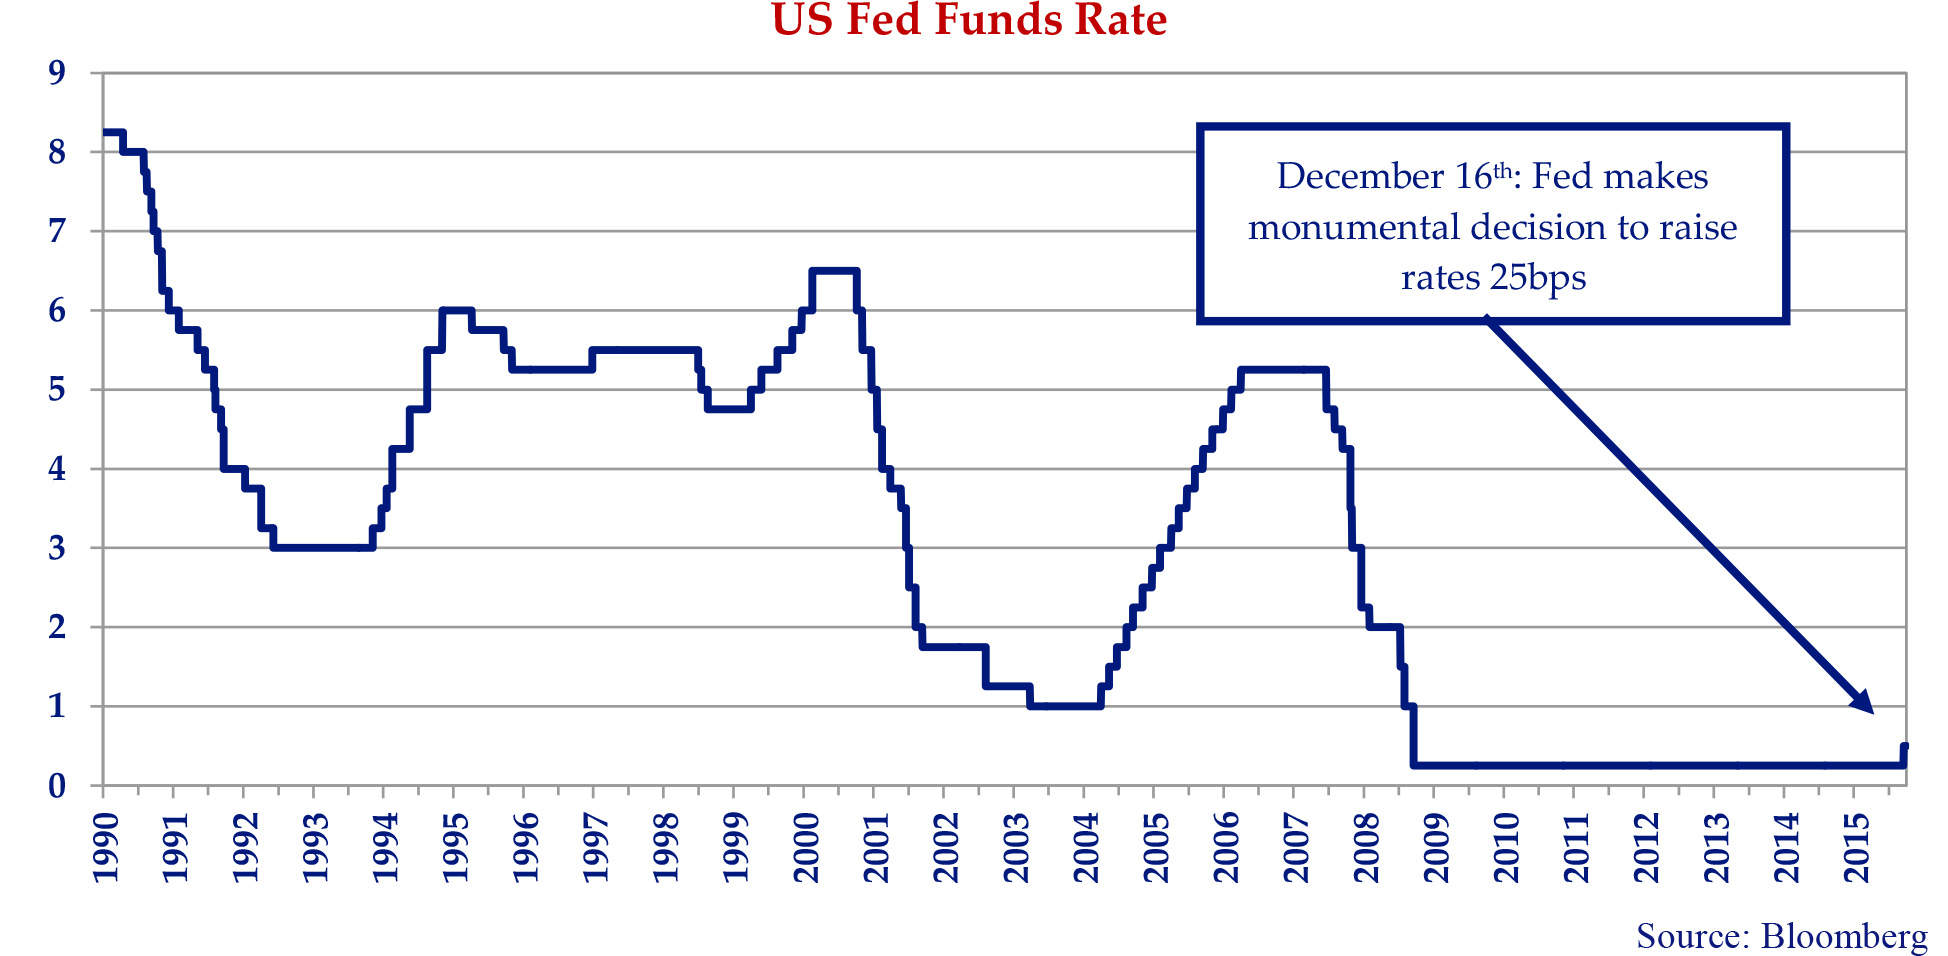 line graph showing the United States Fed fund rate from 1990 to 2016.